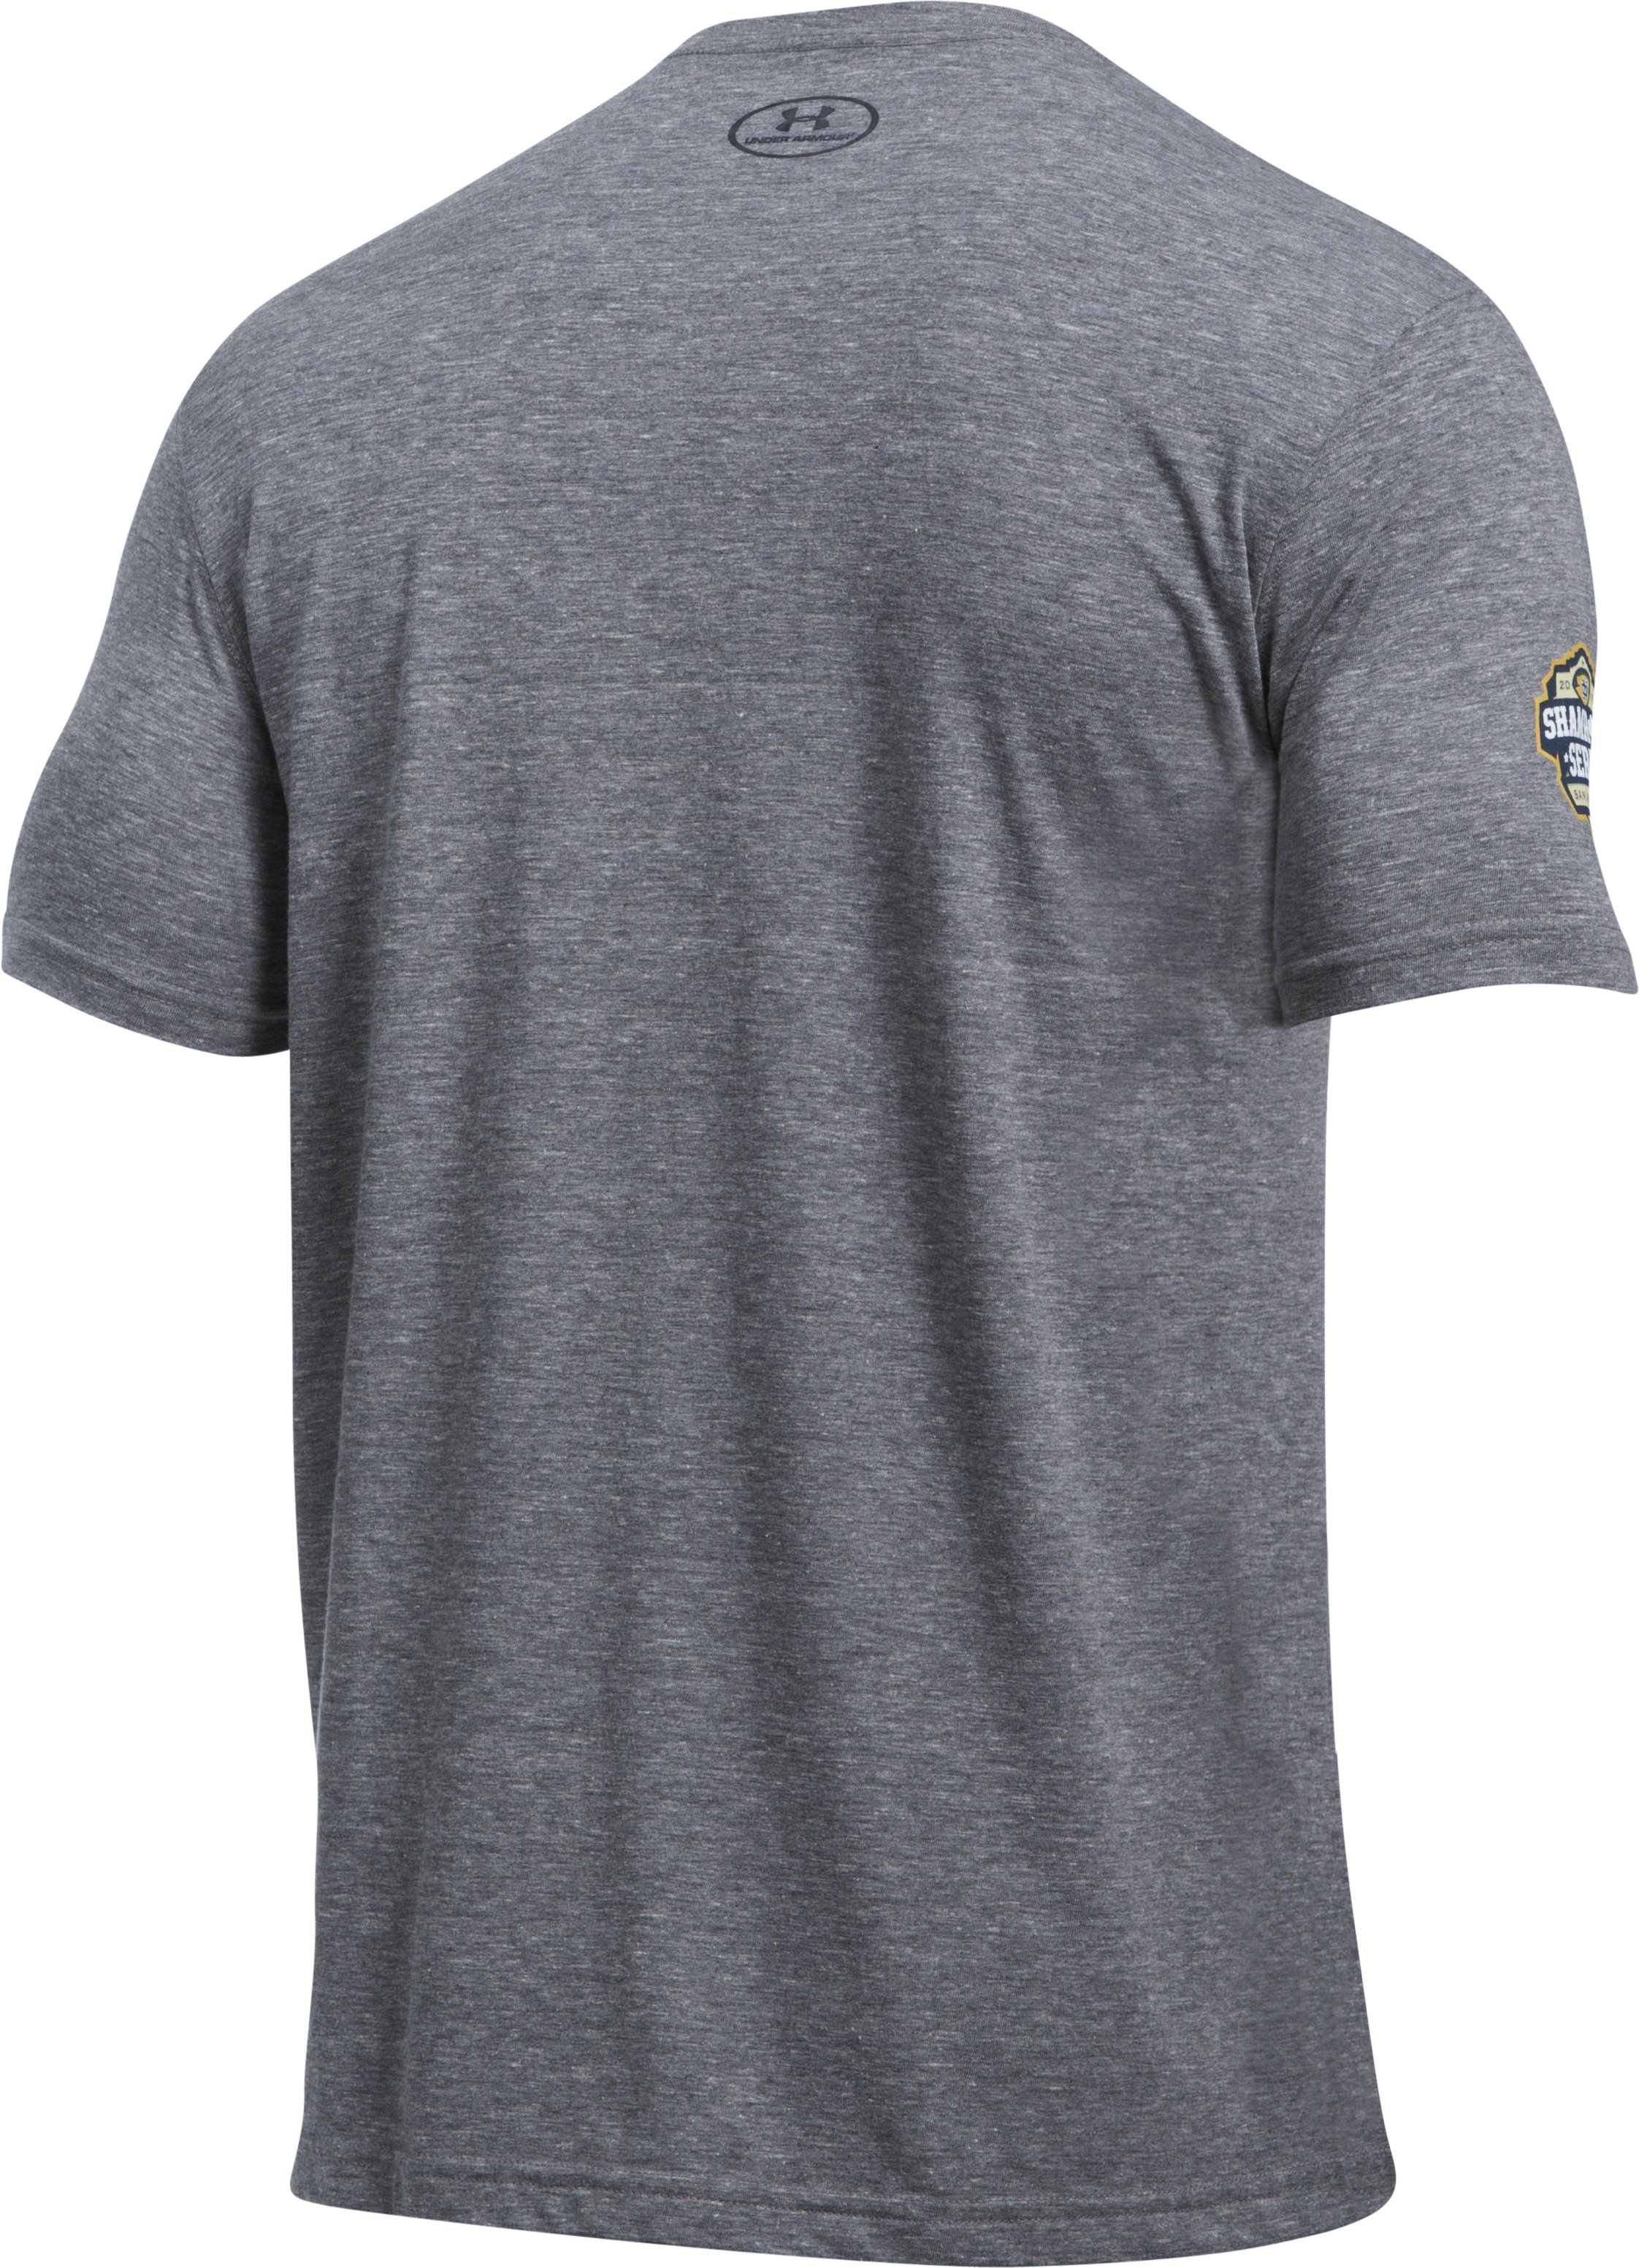 Men's Notre Dame UA 4 Corners T-Shirt, True Gray Heather